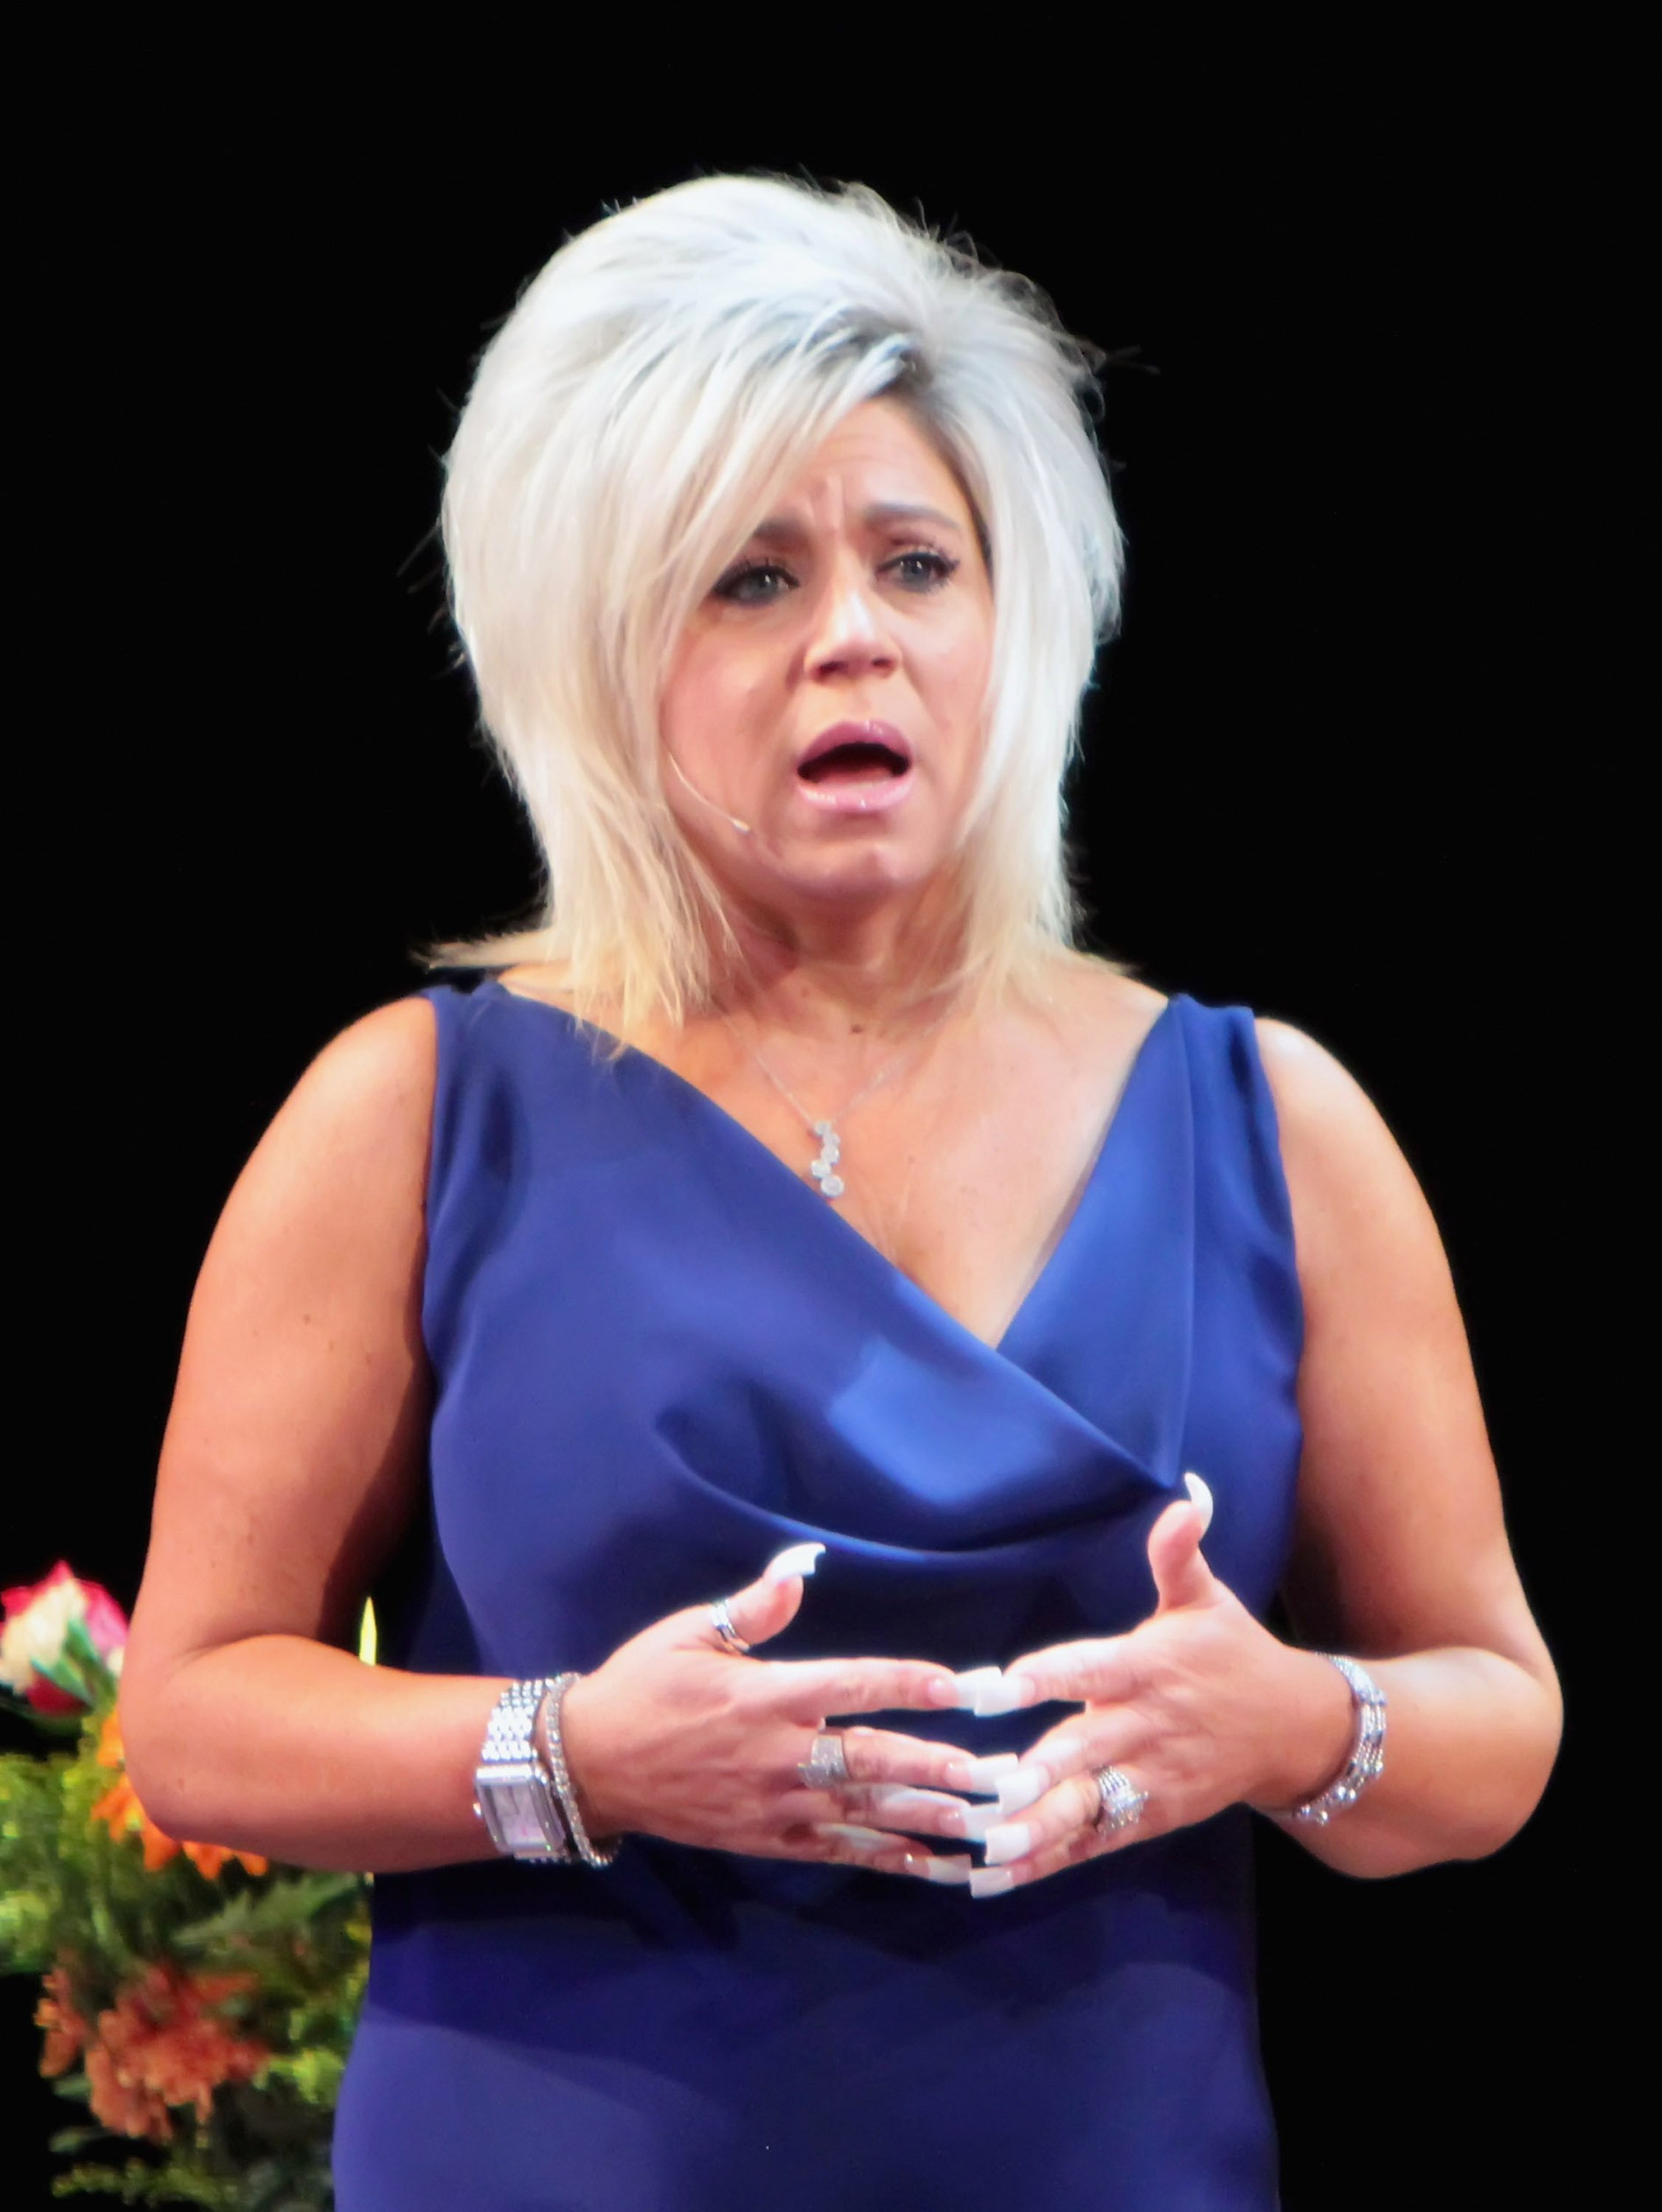 Theresa Caputo appears on stage at the Tropicana Showroom on October 13, 2012 | Photo: GettyImages